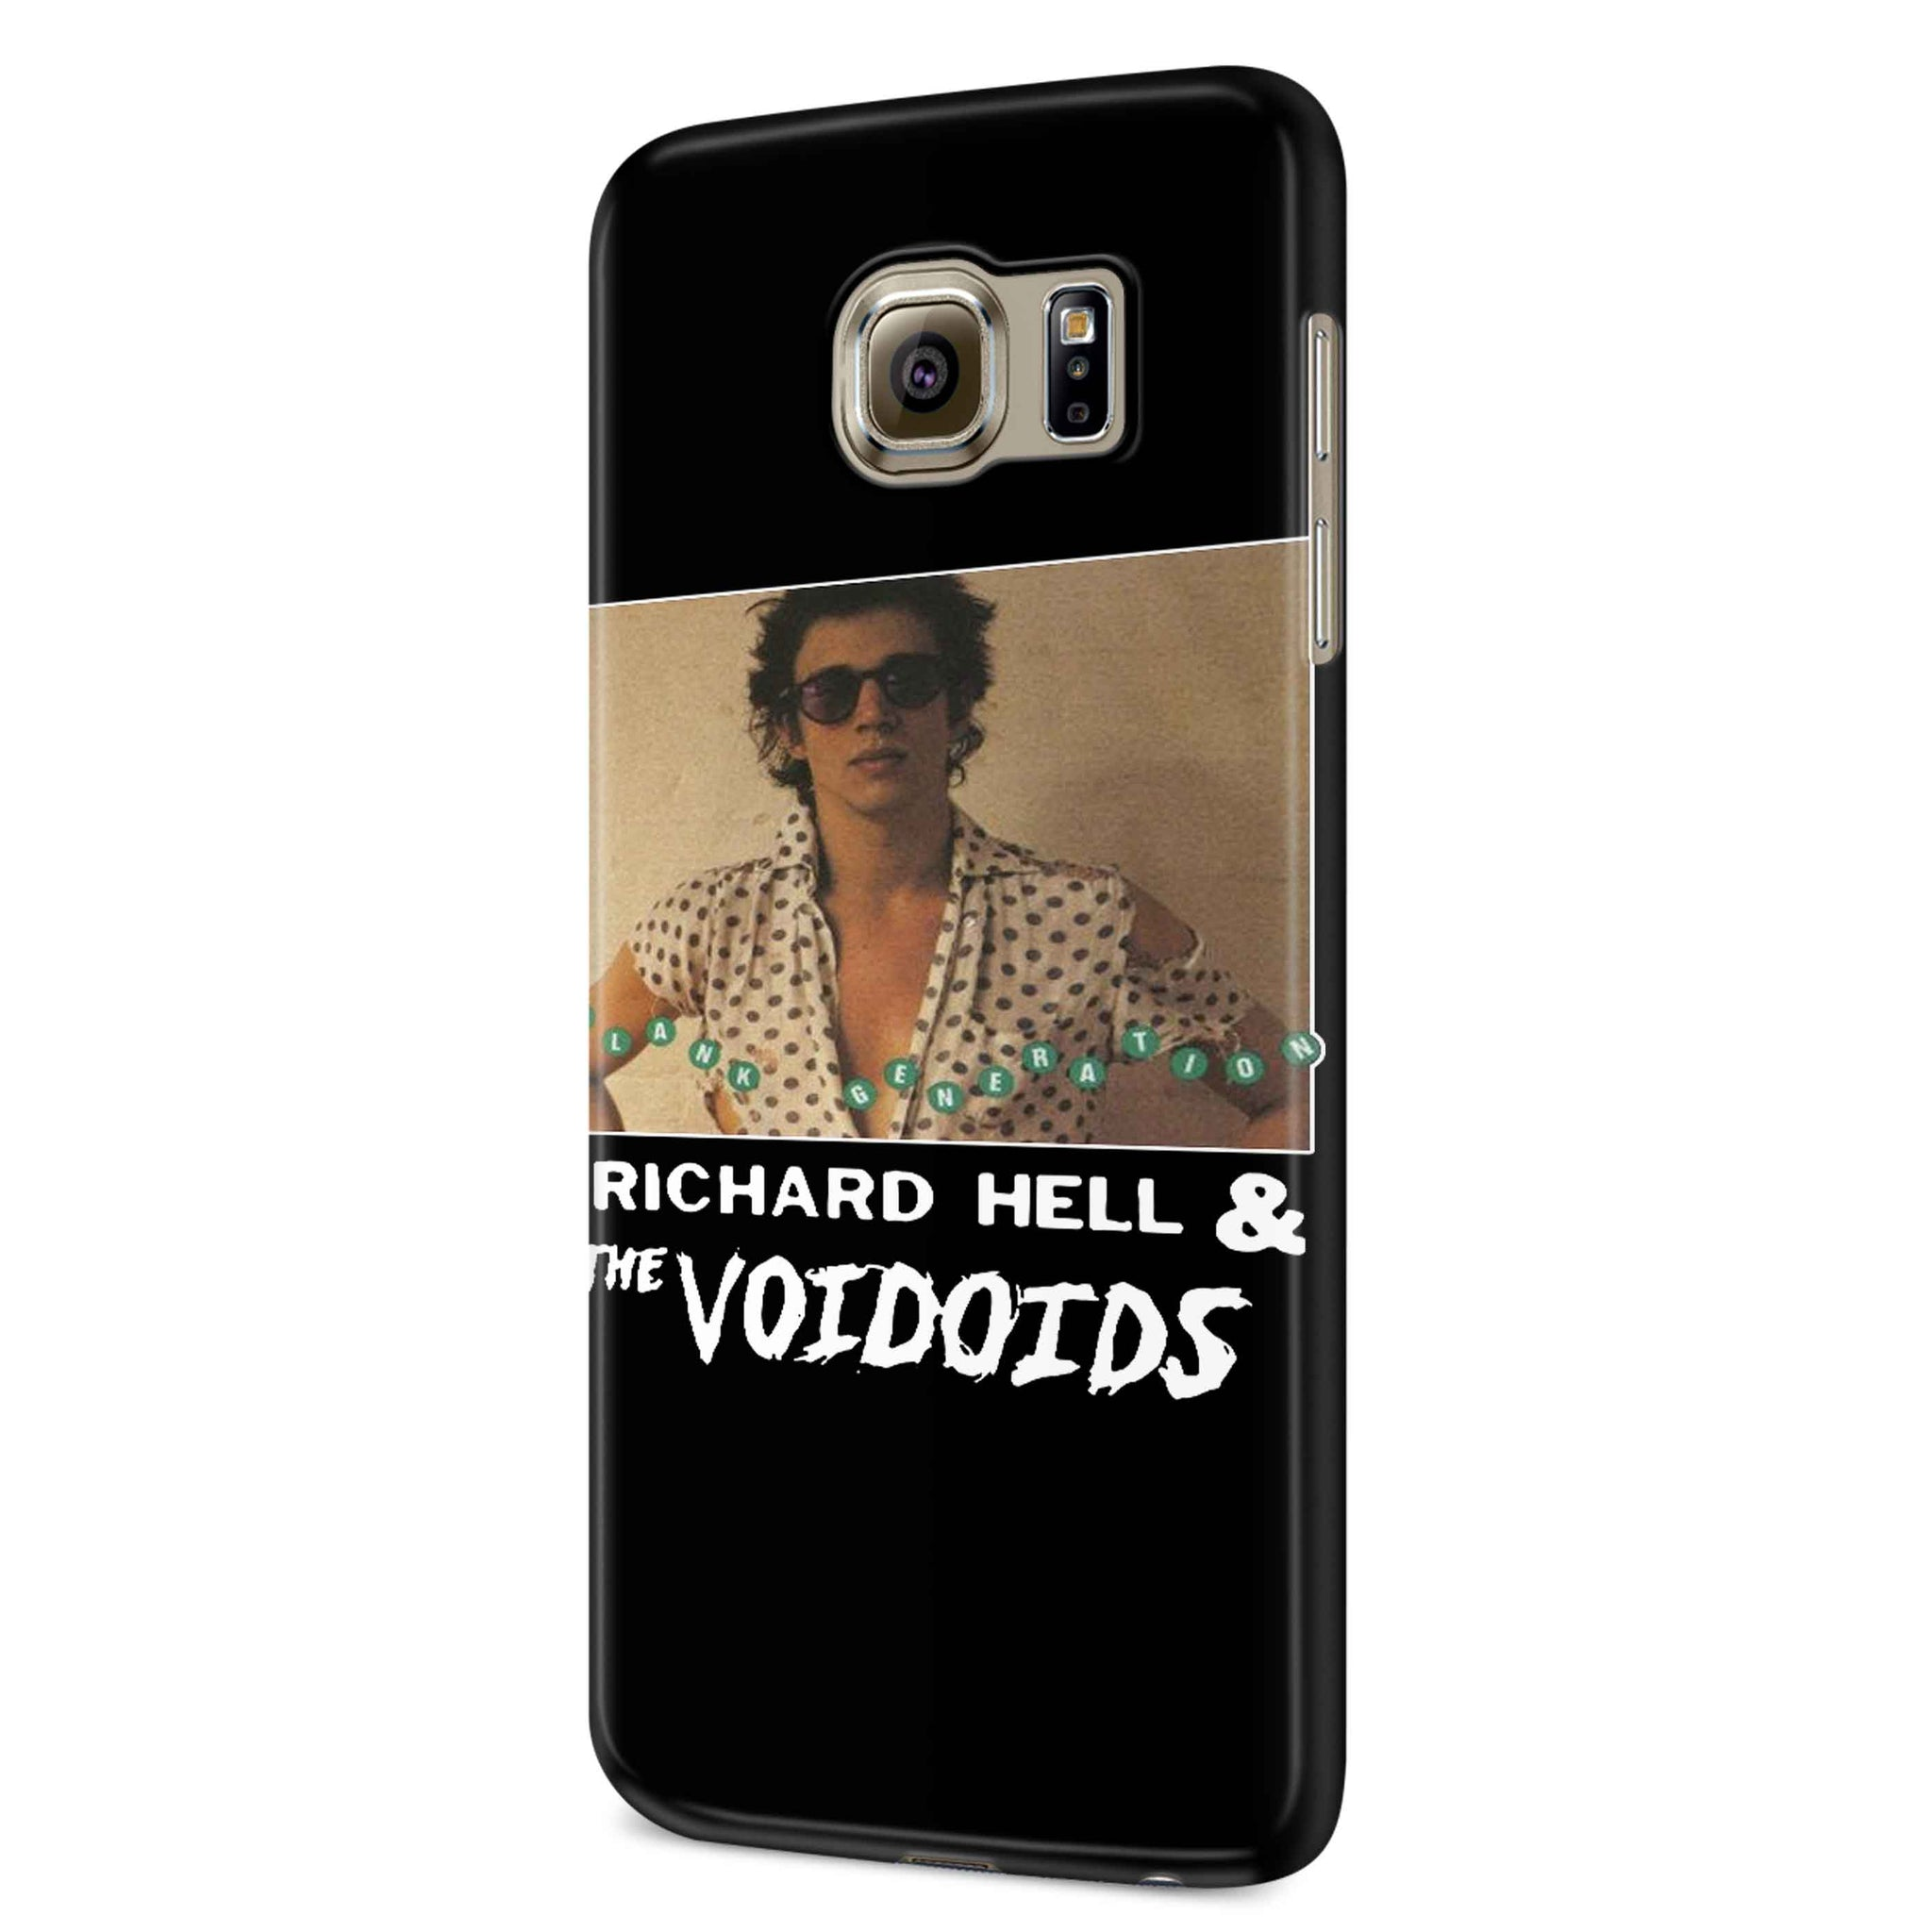 Richard Hell And The Voidoids Samsung Galaxy S6 S6 Edge Plus/ S7 S7 Edge / S8 S8 Plus / S9 S9 plus 3D Case